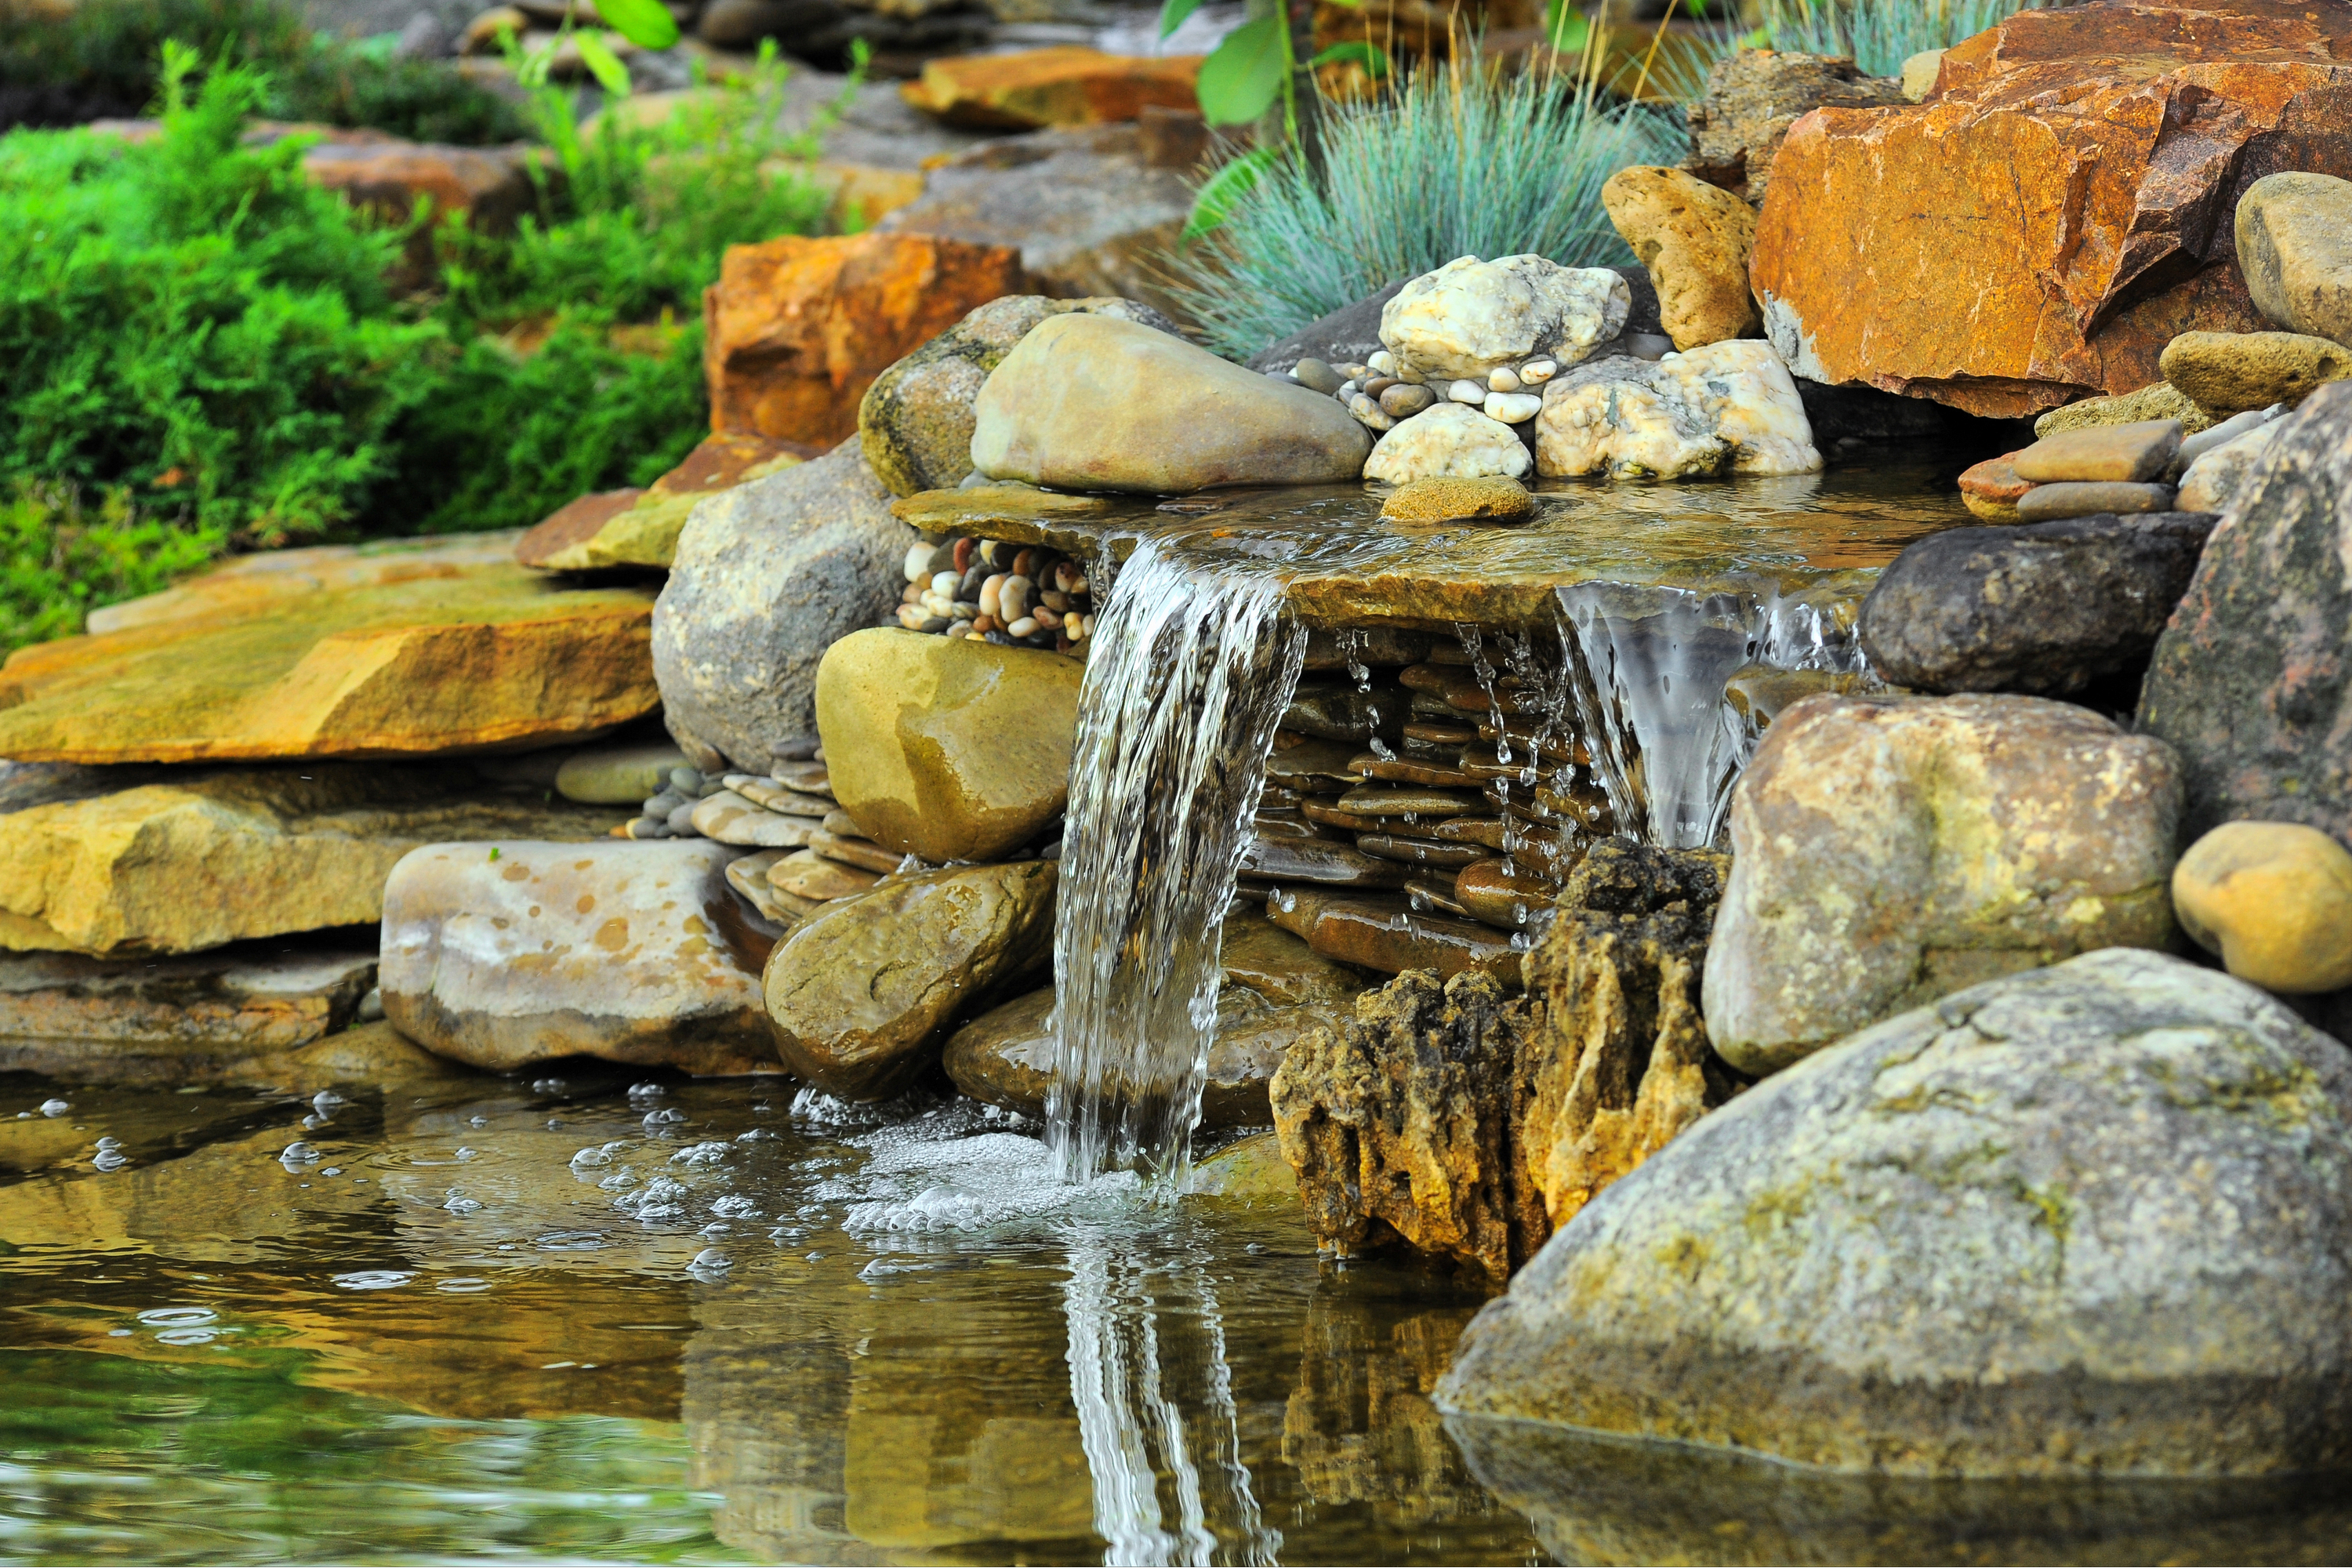 rocks in your garden | rocks | garden | rocky garden | garden ideas | garden design